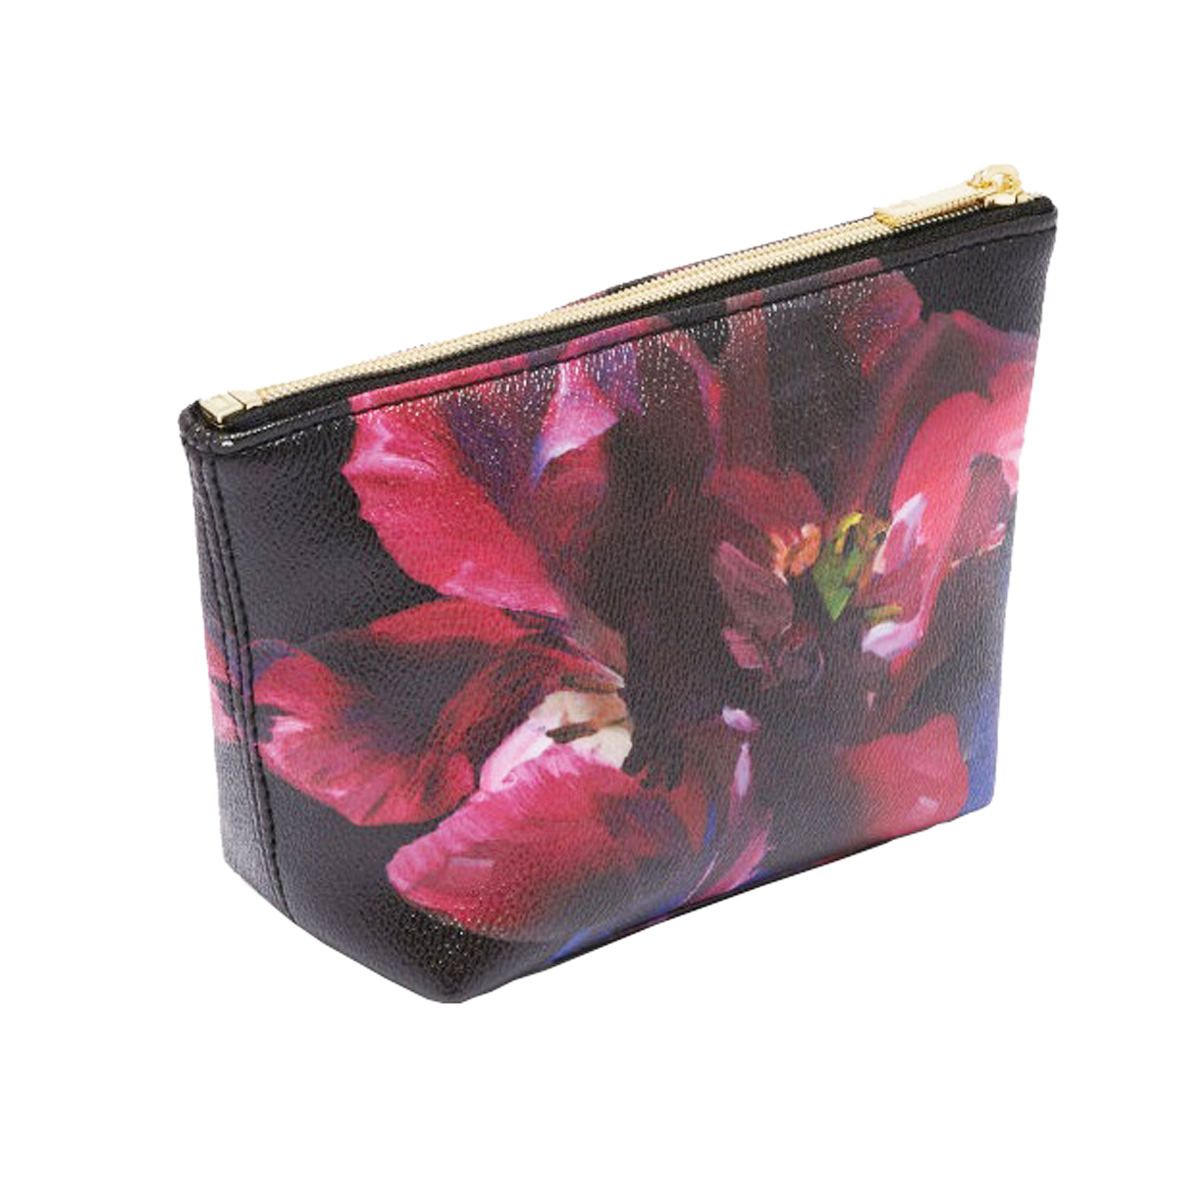 Luxury delicate ladies' cosmetic bag overall printed make up bag